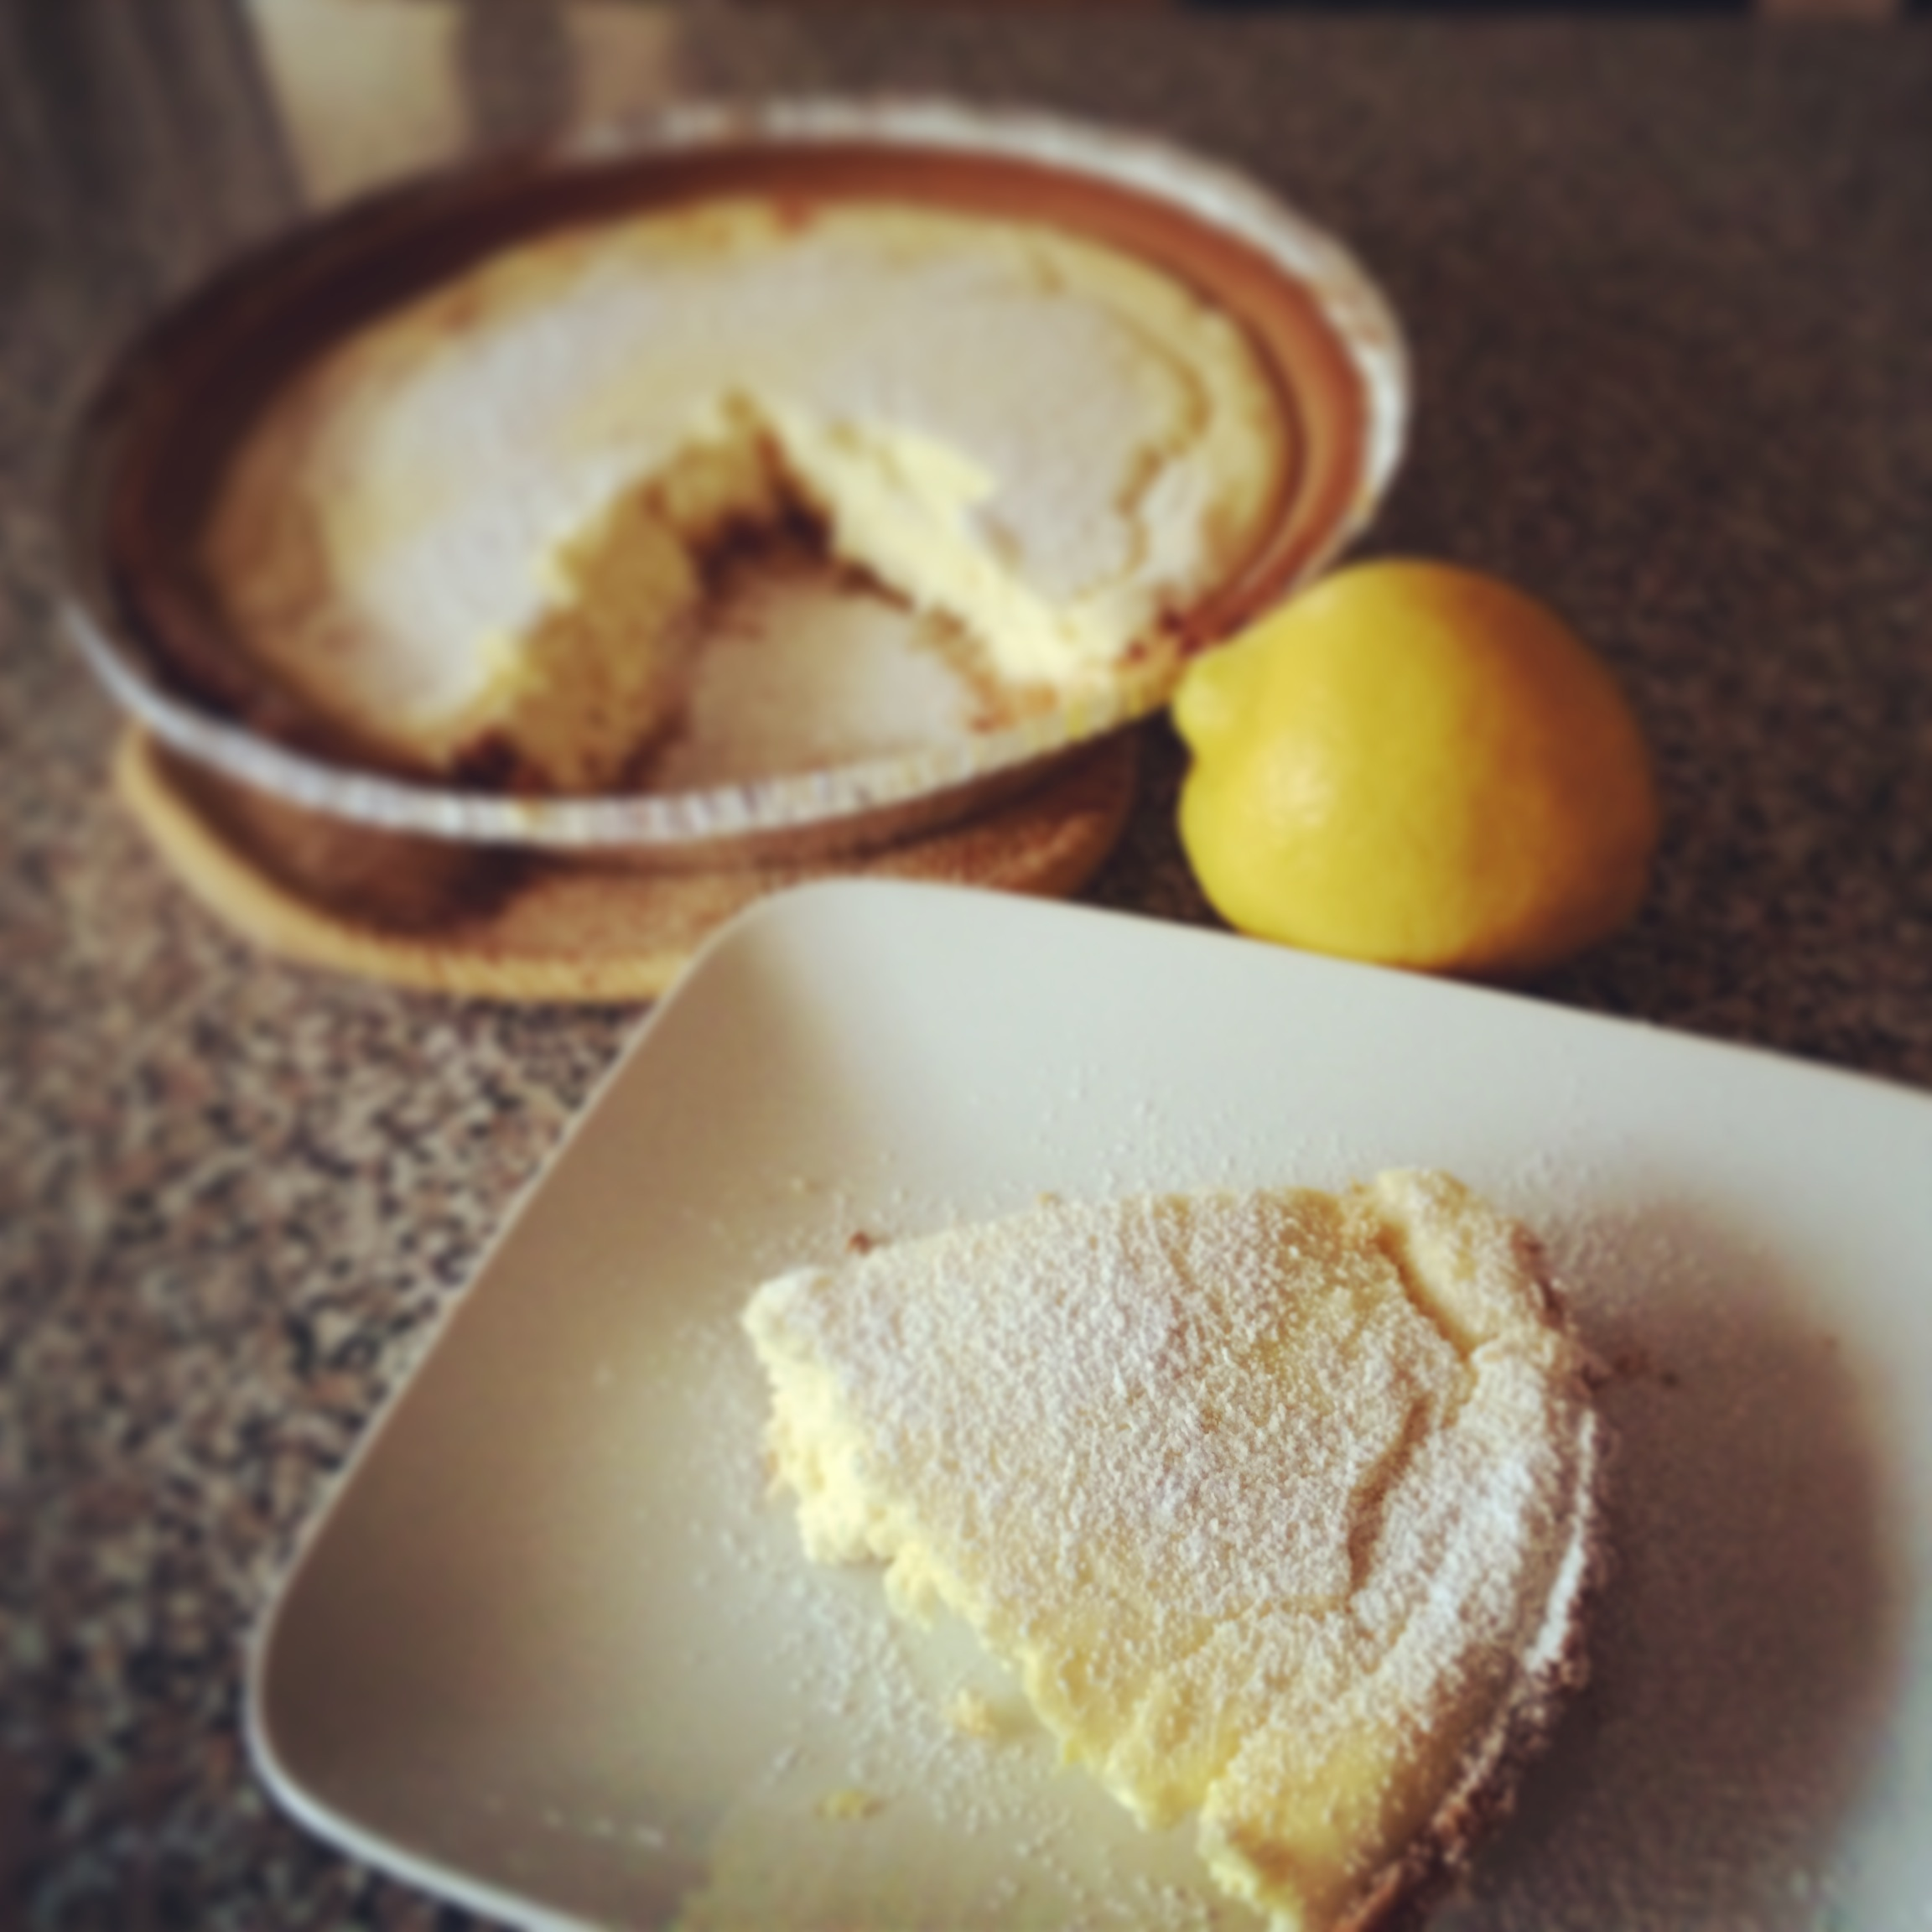 The best easy cheesecake recipe I've ever made! This lemon cheesecake is light and fluffy and it isn't fussy to make like some cheesecakes are. Get the recipe from @basilmomma